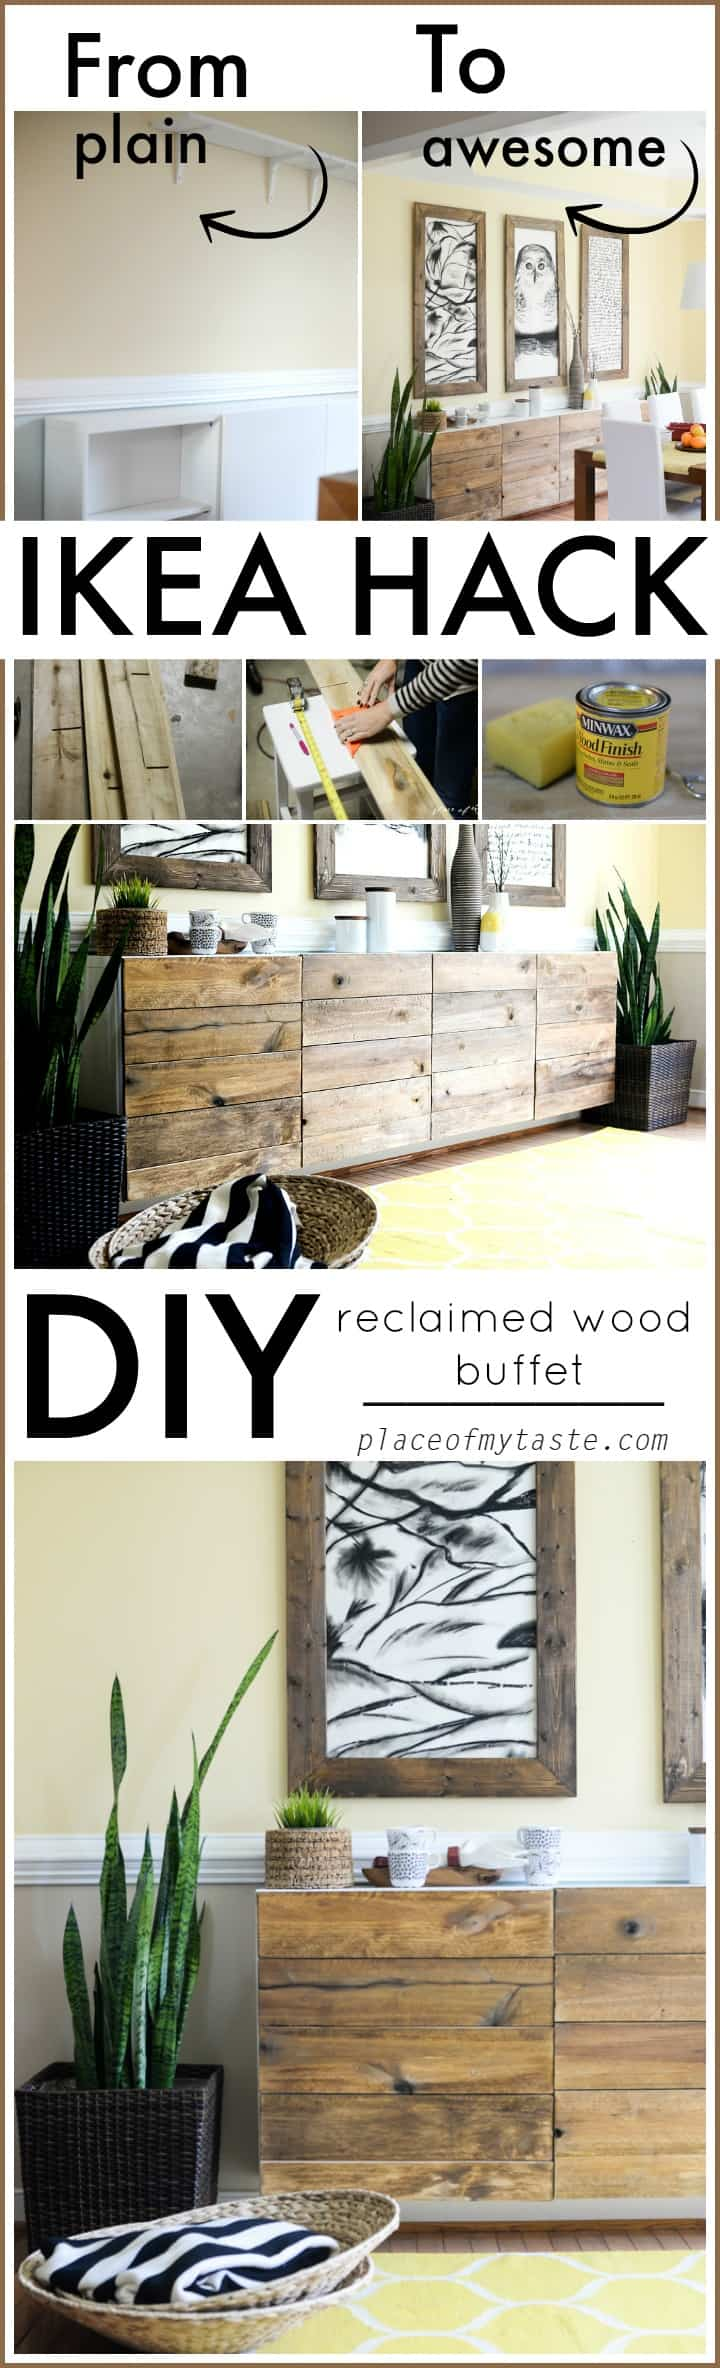 diy fireplace mantel. Black Bedroom Furniture Sets. Home Design Ideas